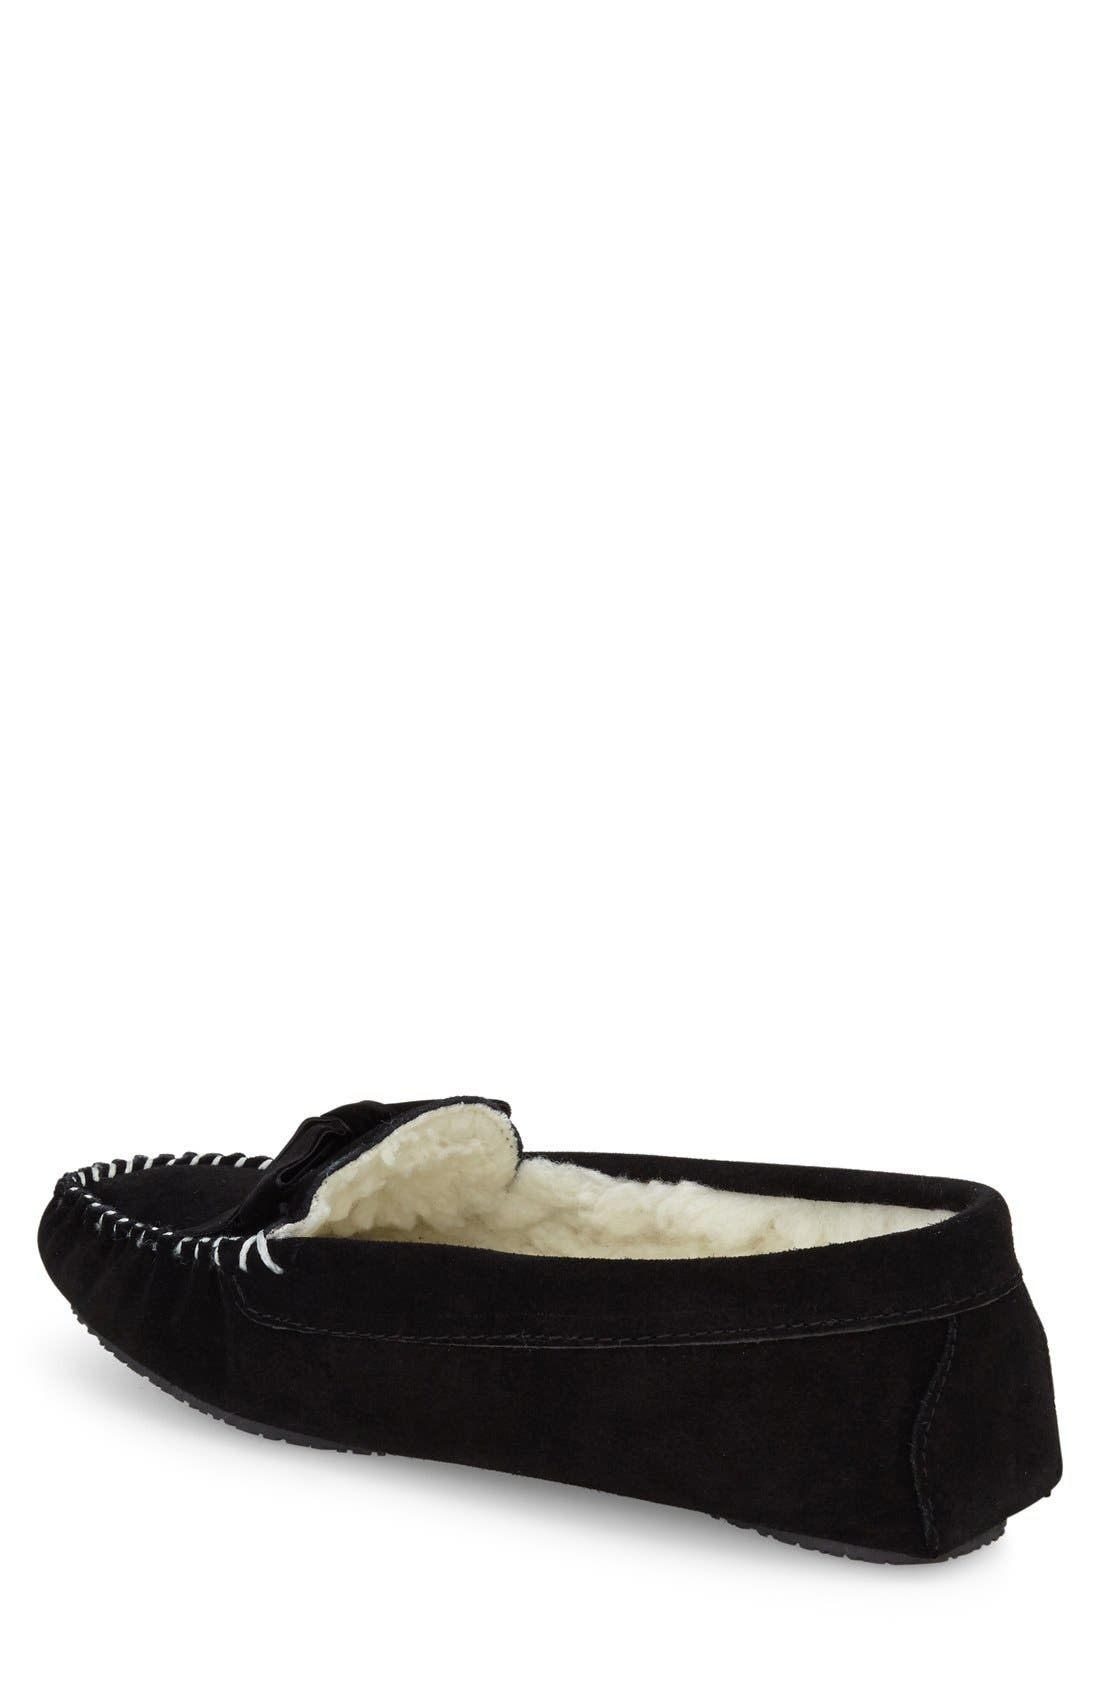 'Haley' Slipper,                             Alternate thumbnail 2, color,                             Black Suede